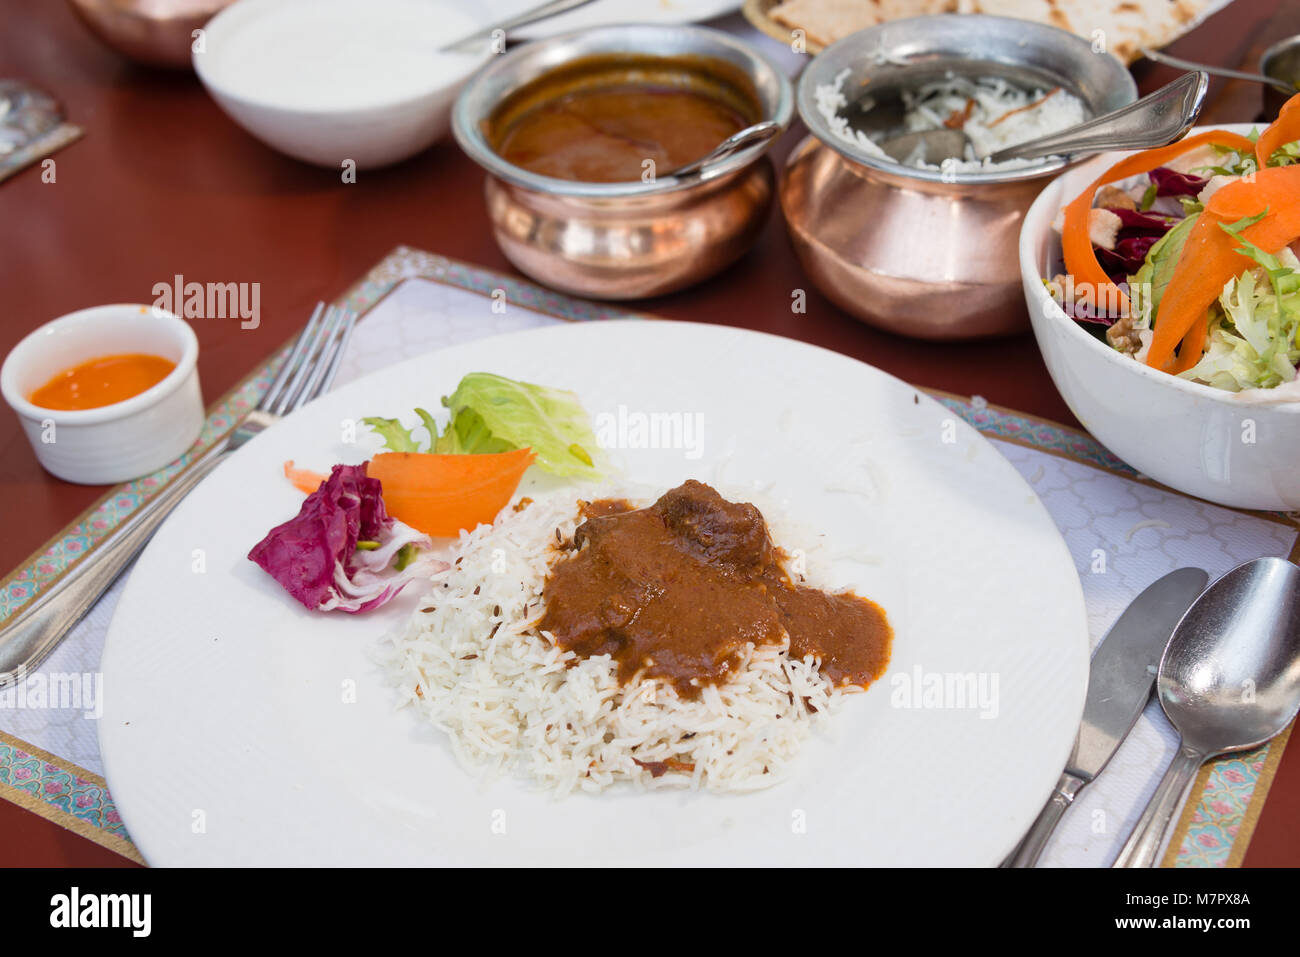 Rogan Josh with rice - Indian cuisine - Stock Image